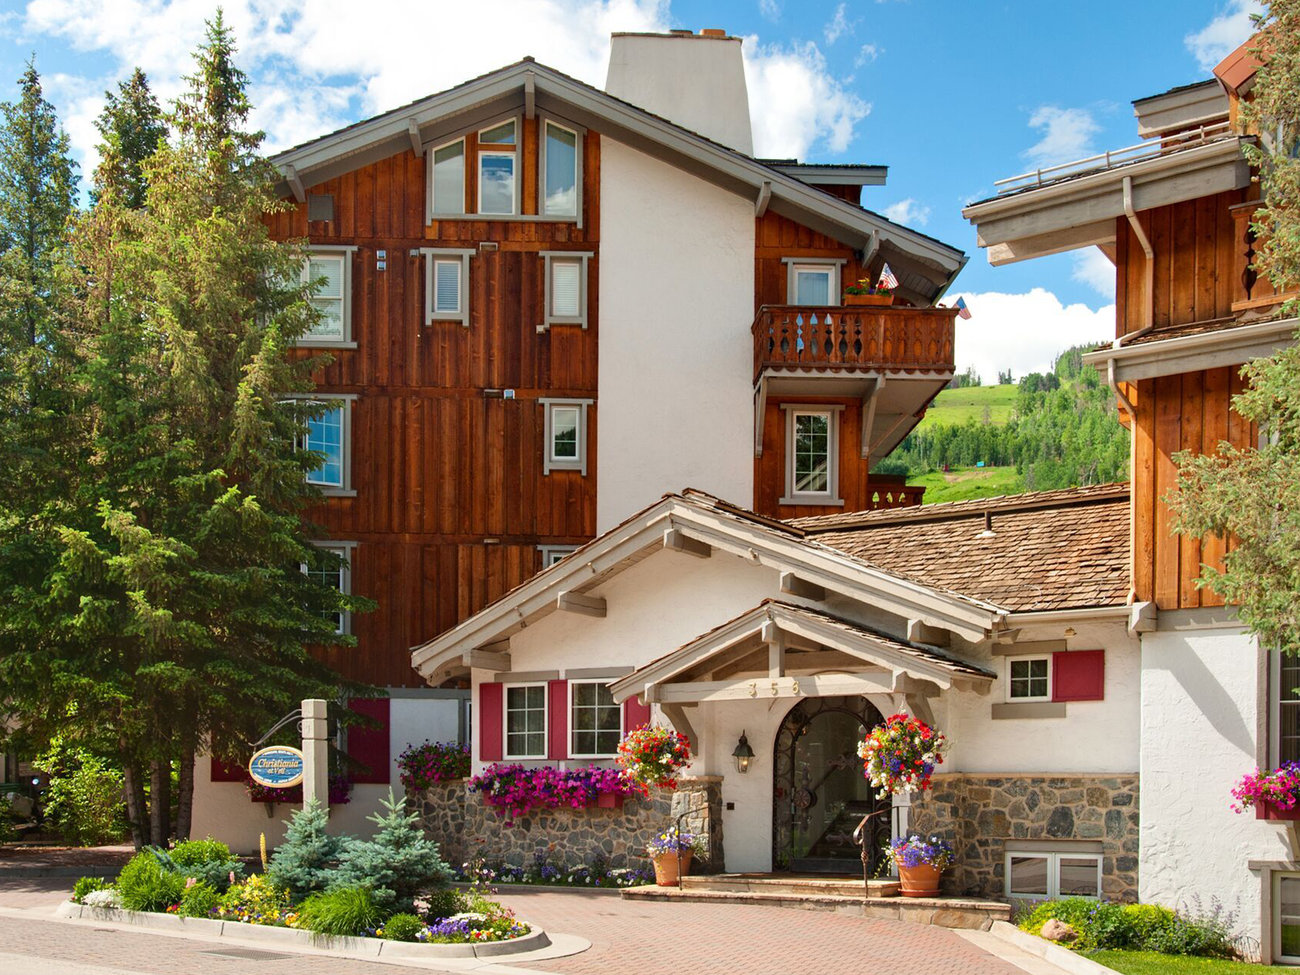 Christiania Lodge Hotel in Vail